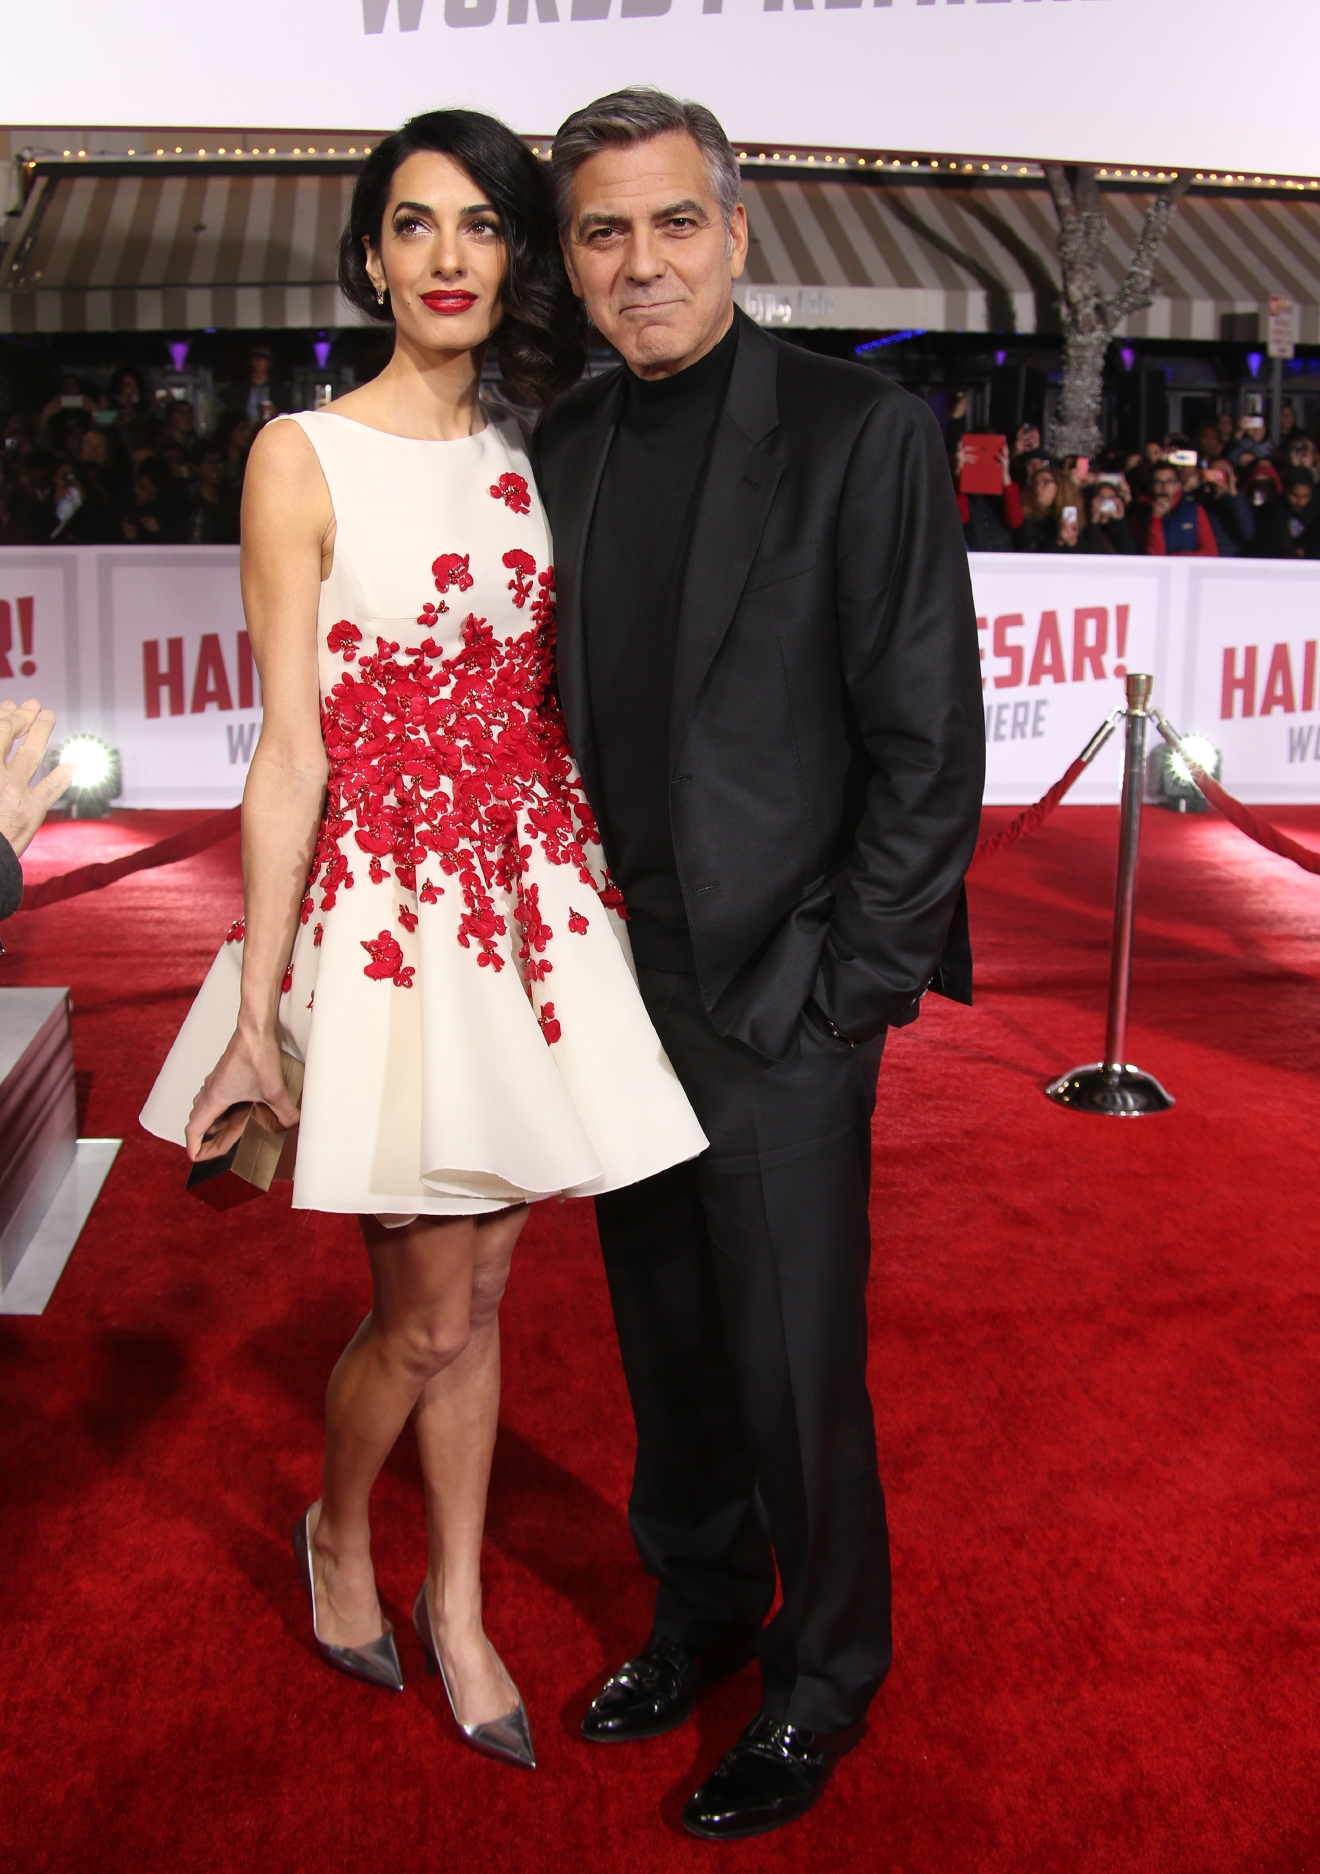 "Premiere Of Universal Pictures' ""Hail, Caesar!""                                    Featuring: Amal Clooney, George Clooney                  Where: Westwood, California, United States                  When: 02 Feb 2016                  Credit: FayesVision/WENN.com"